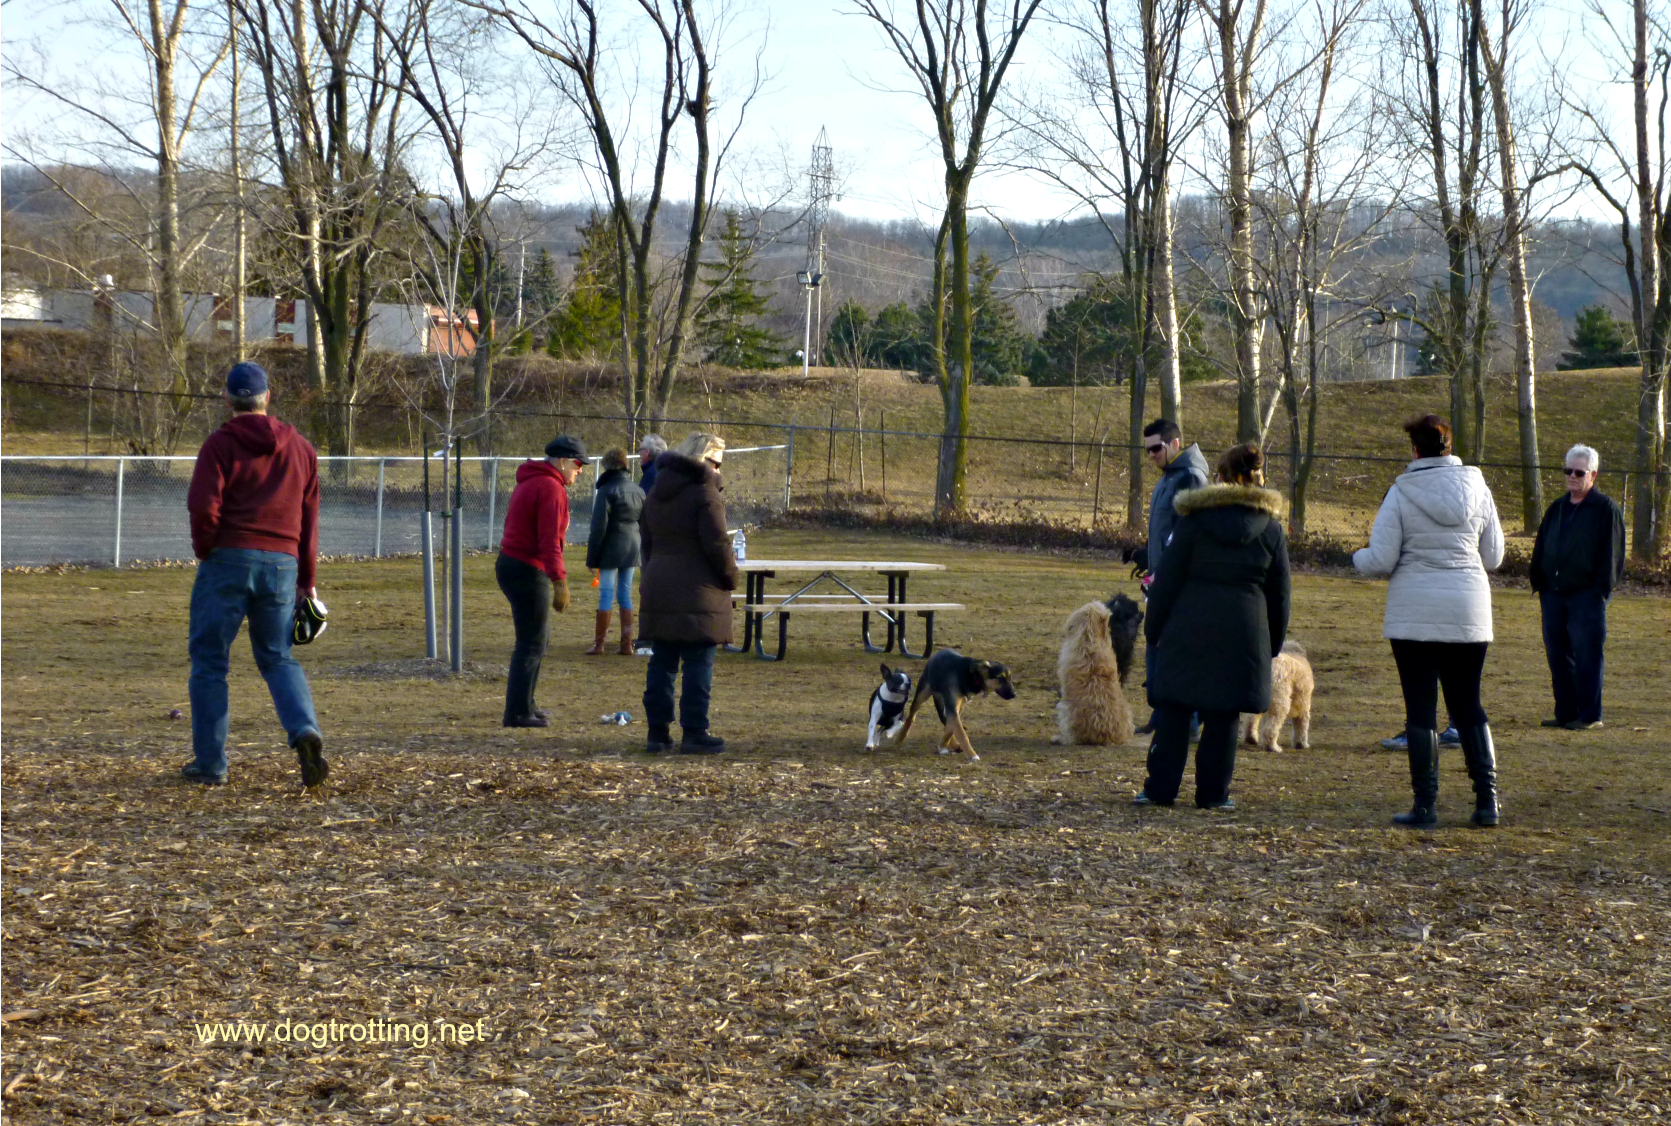 people and dogs at dog park dogtrotting.net